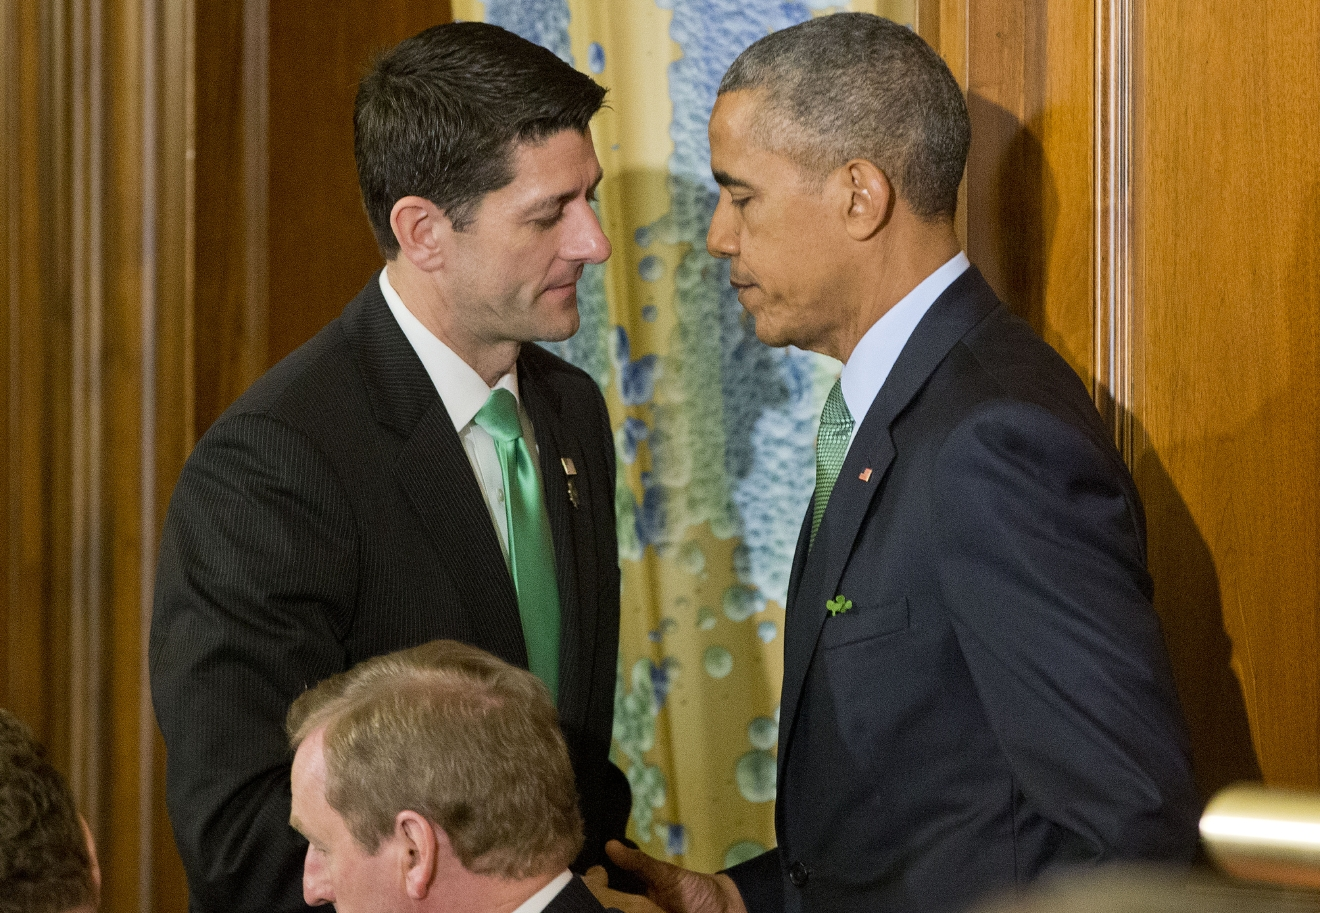 President Barack Obama, right, and House Speaker Paul Ryan of Wis., left, shake hands during a lunch celebrating St. Patrick's Day for Irish Prime Minister Enda Kenny, center, on Capitol Hill in Washington, Tuesday, March 15, 2016. (AP Photo/Pablo Martinez Monsivais)